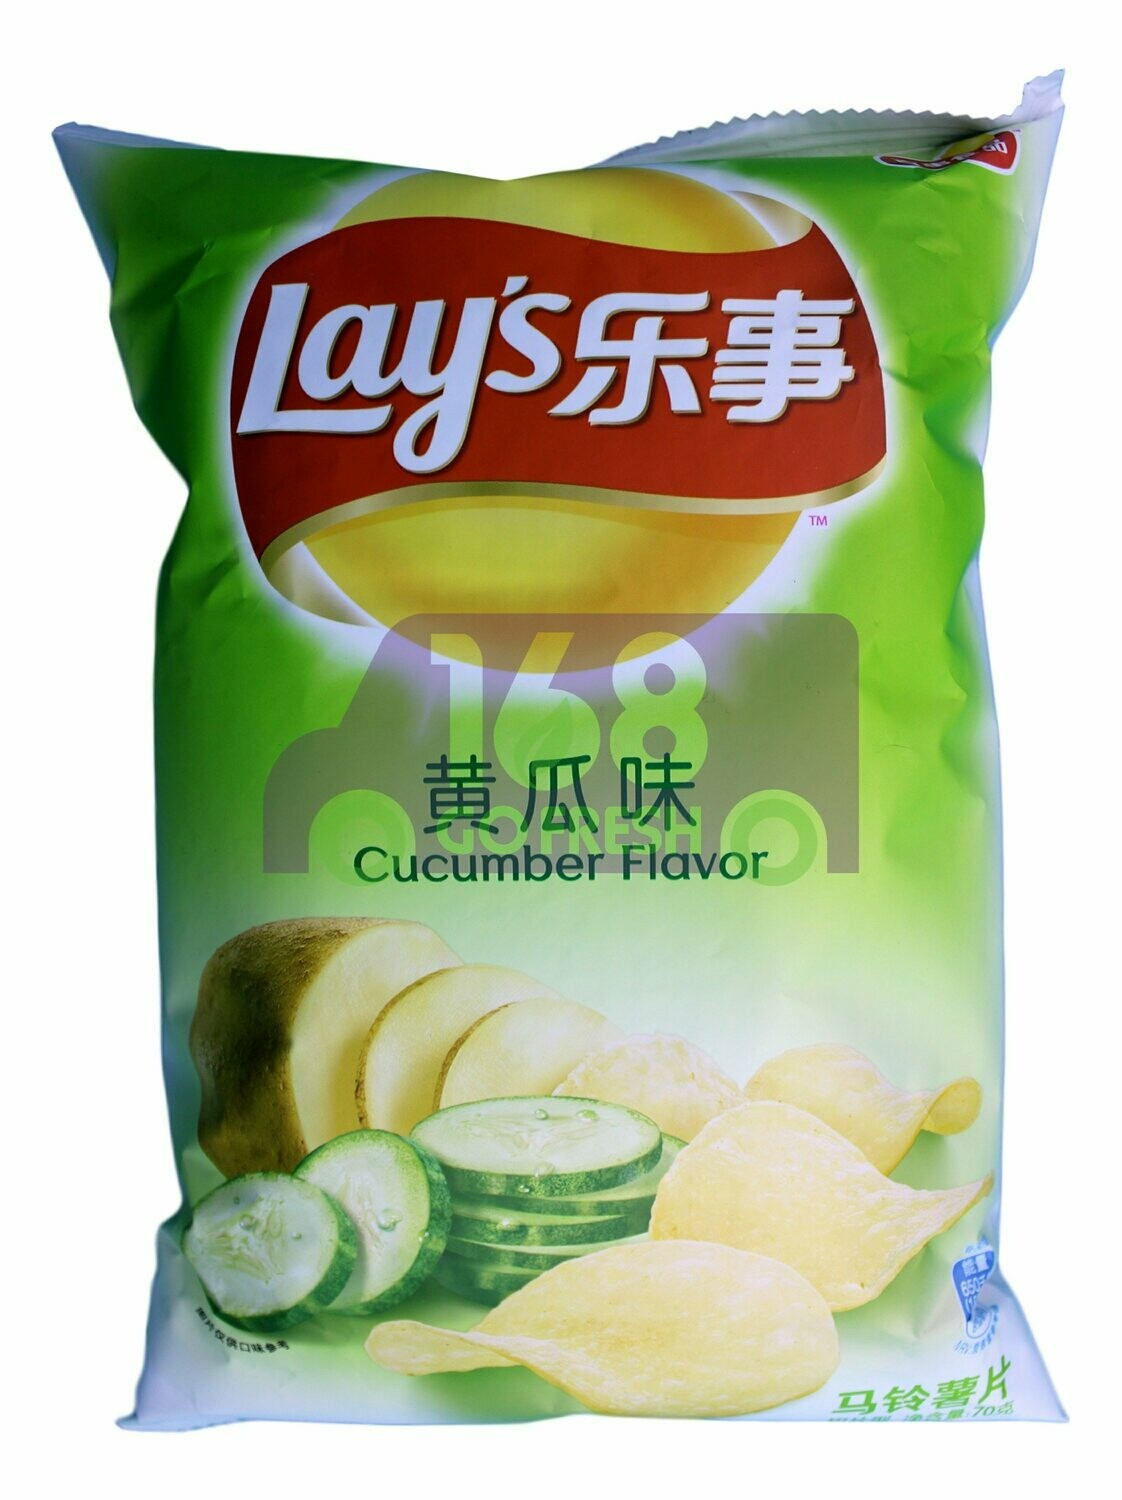 LAYS POTATO CHIPS-CUCUMBER FLAVOUR 乐事 黄瓜味薯片(70G)